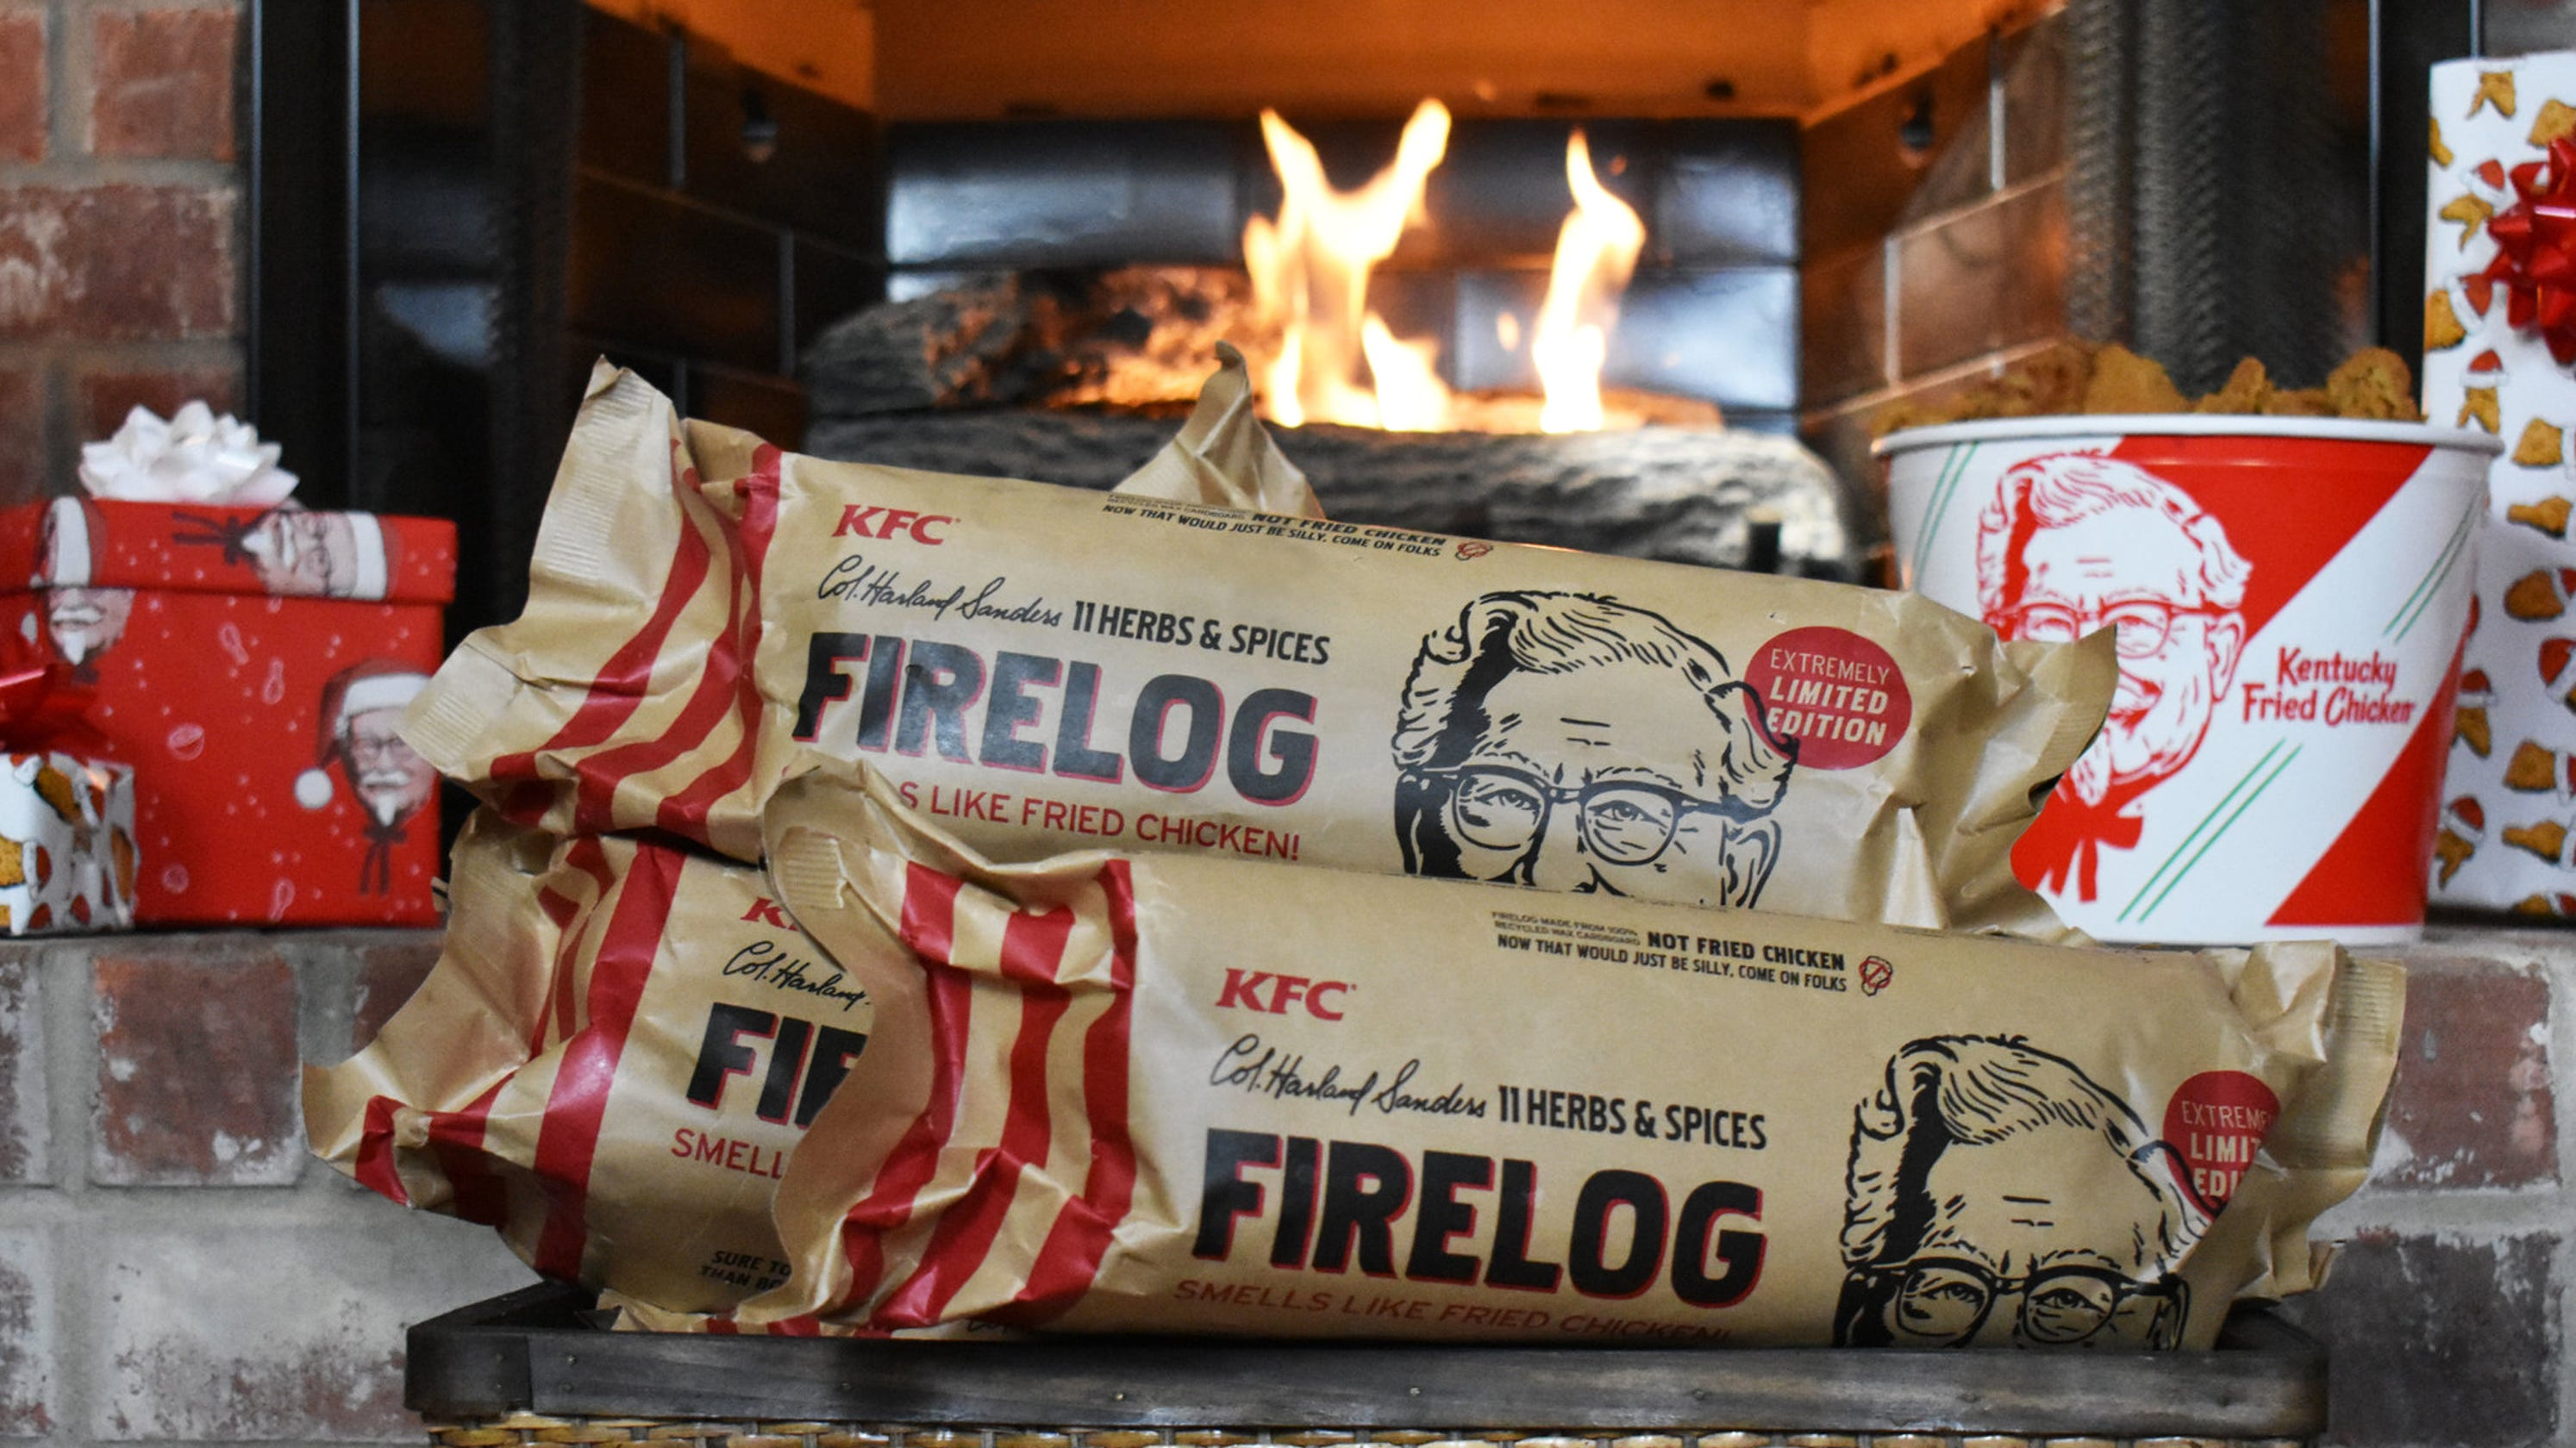 KFC wants to warm your home with a log that smells like fried chicken